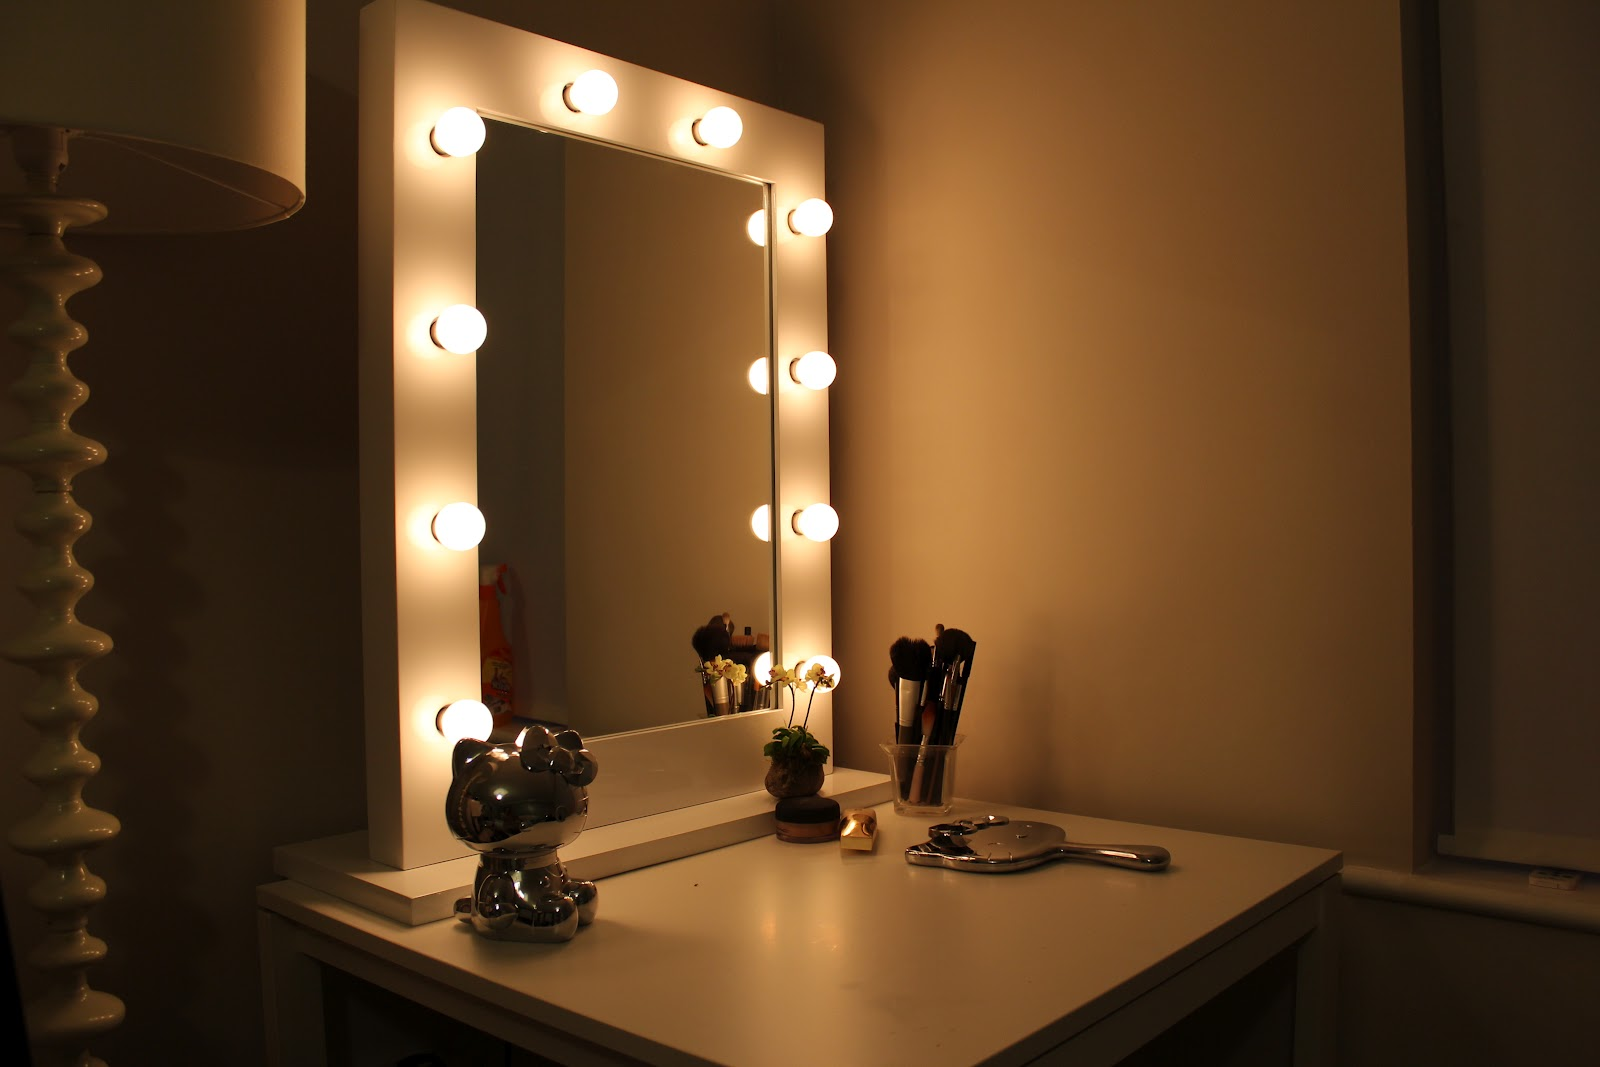 Vanity Girl Hollywood Light Up Mirror : PIXEL PERFECT by Sophie Shohet